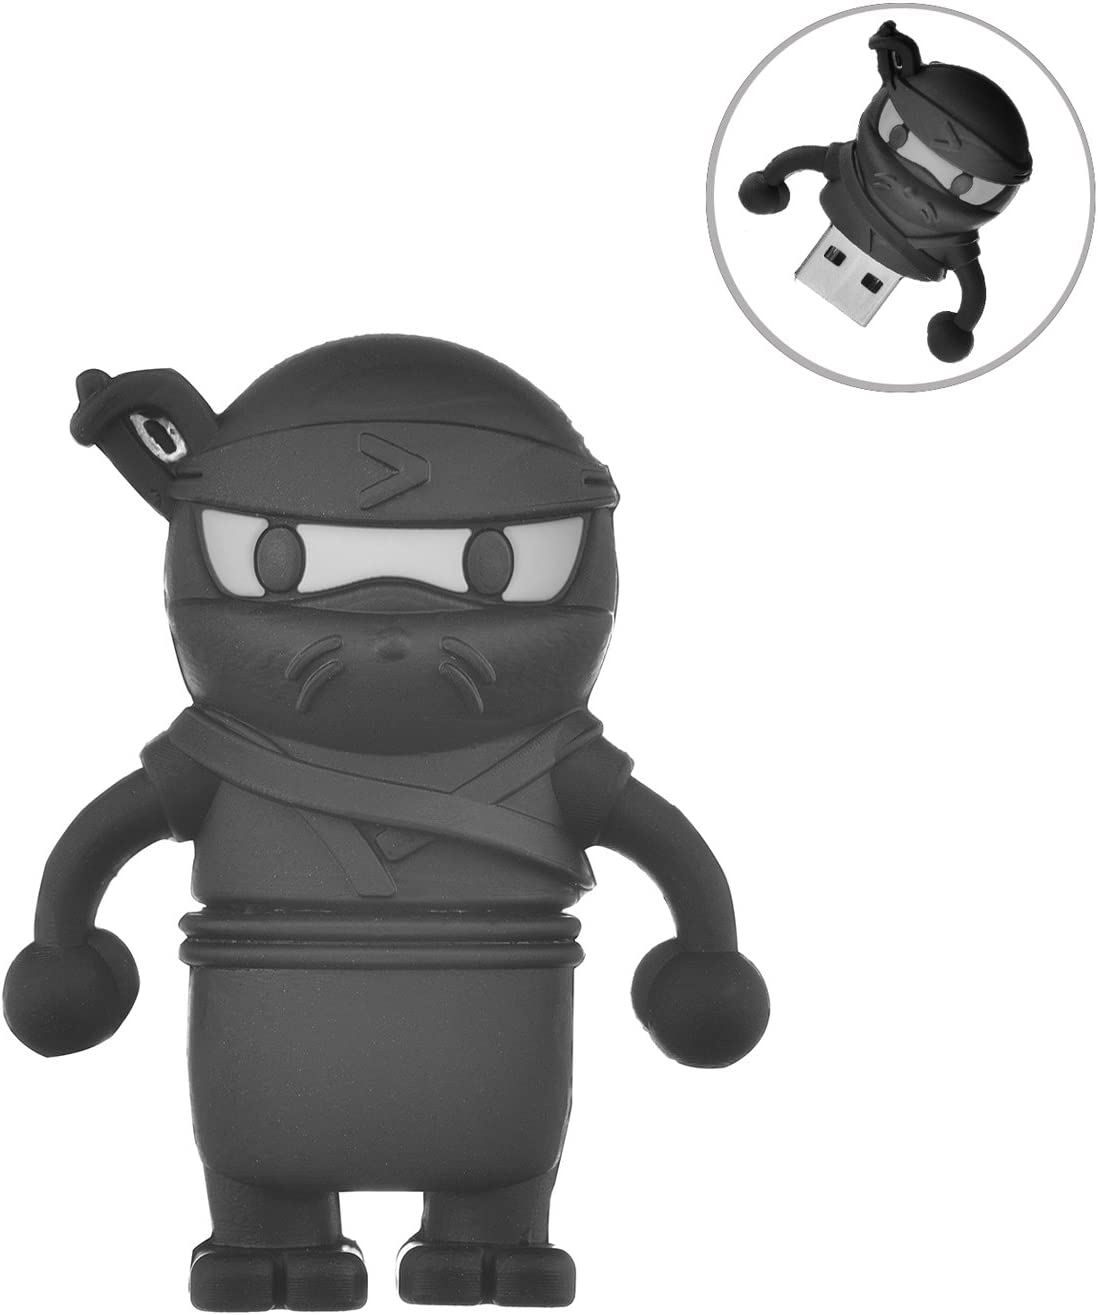 Flash Drive 32GB, Memory Stick Pen Drive USB2.0 AreTop Cute Cartoon Miniature Ninja Shape Thumb Drives for Date Storage Gift for School Students Kids ...